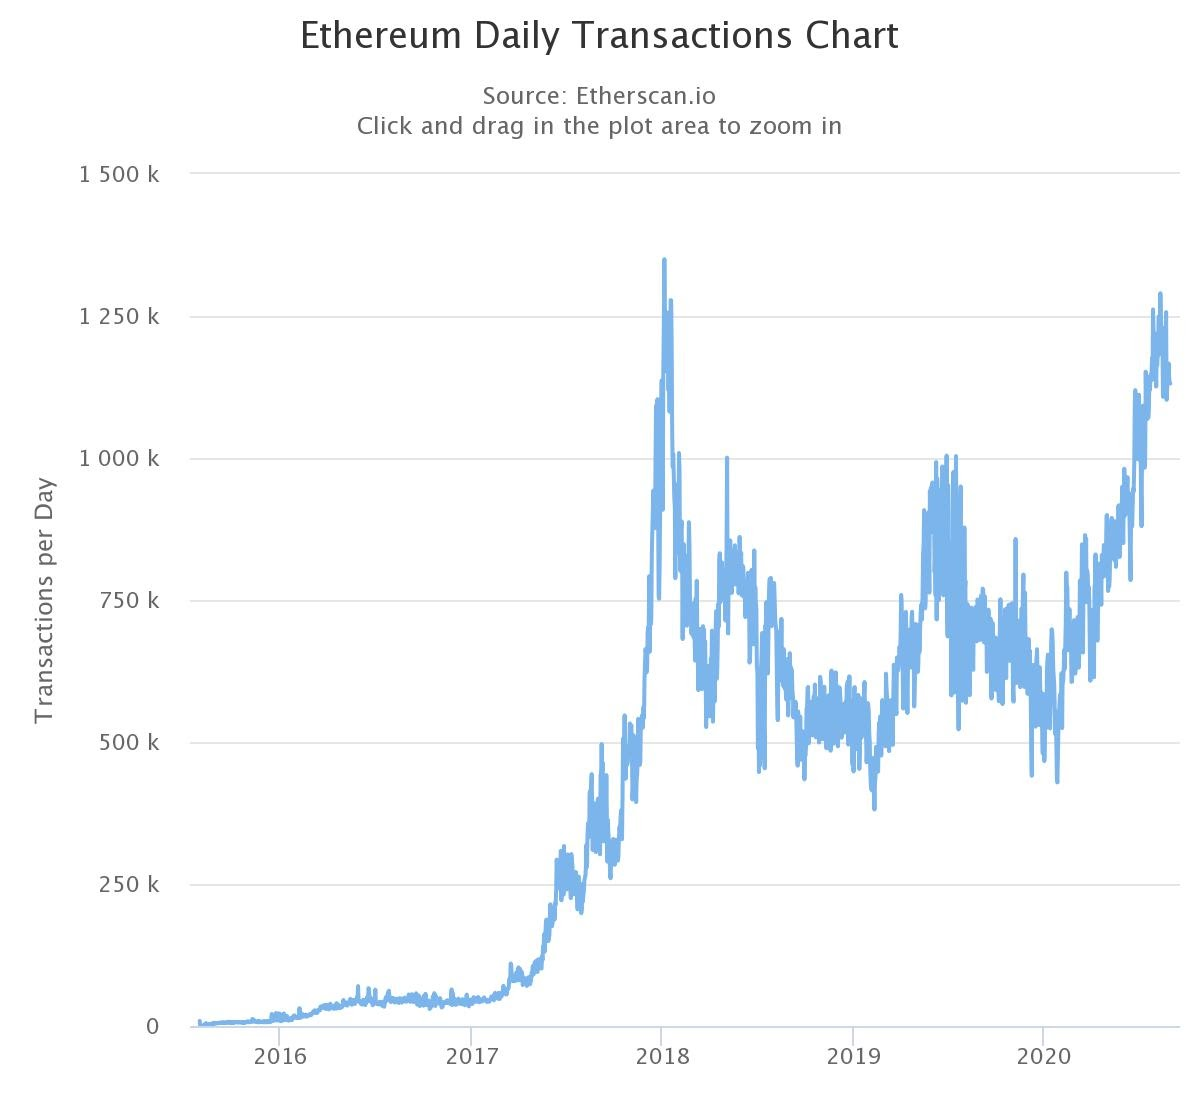 The daily transaction chart on Ethereum